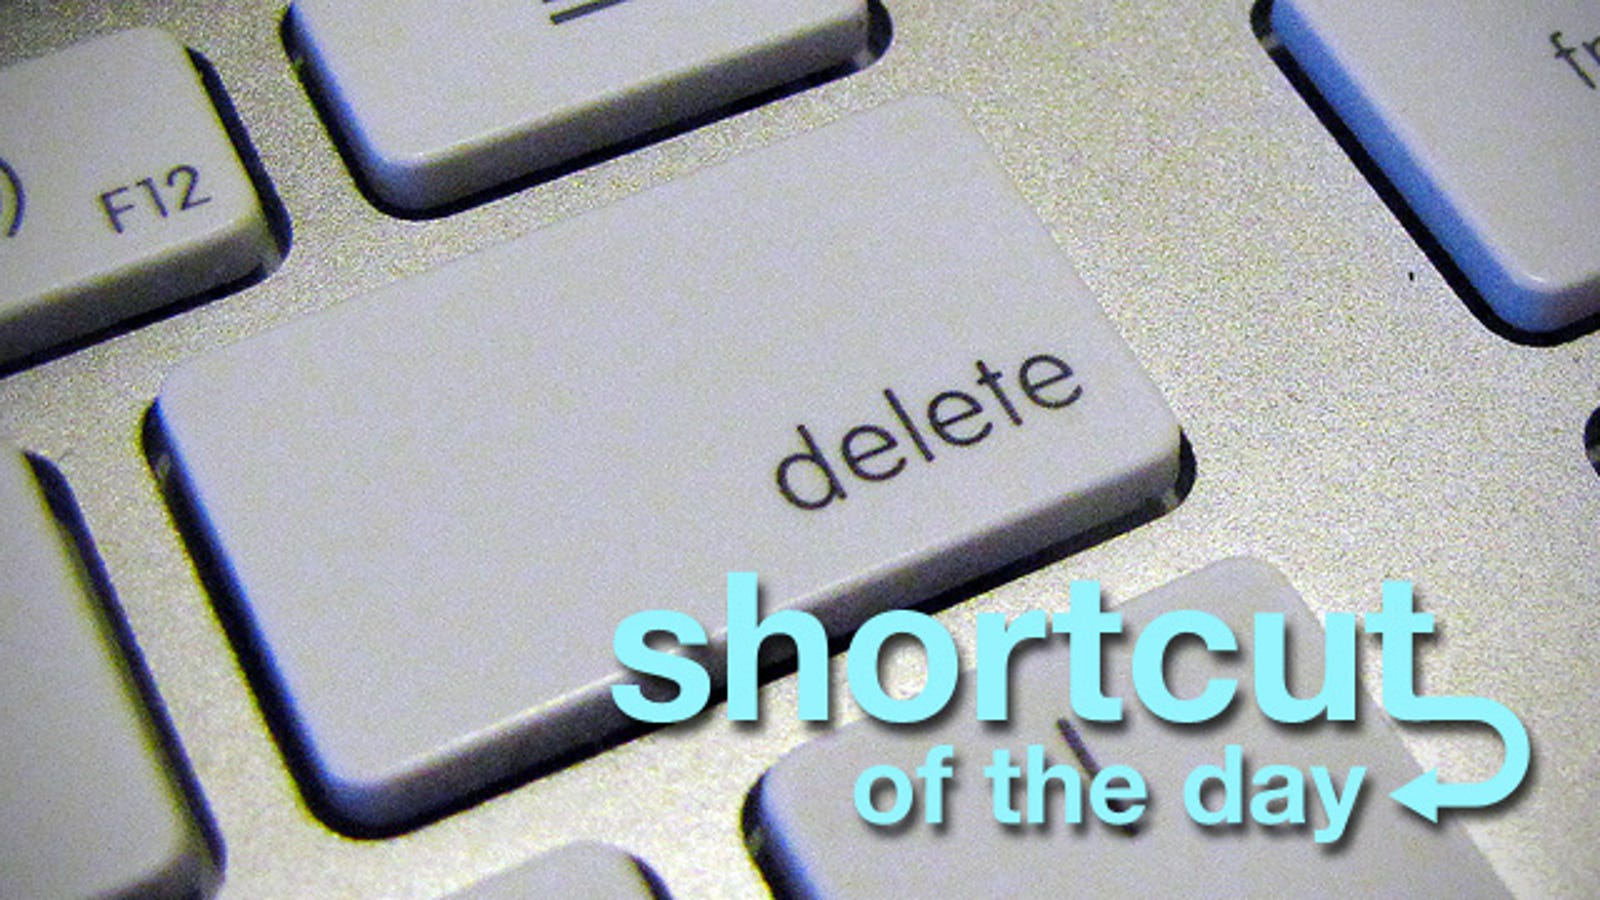 The Mac OS X Delete Key: It Goes Both Ways